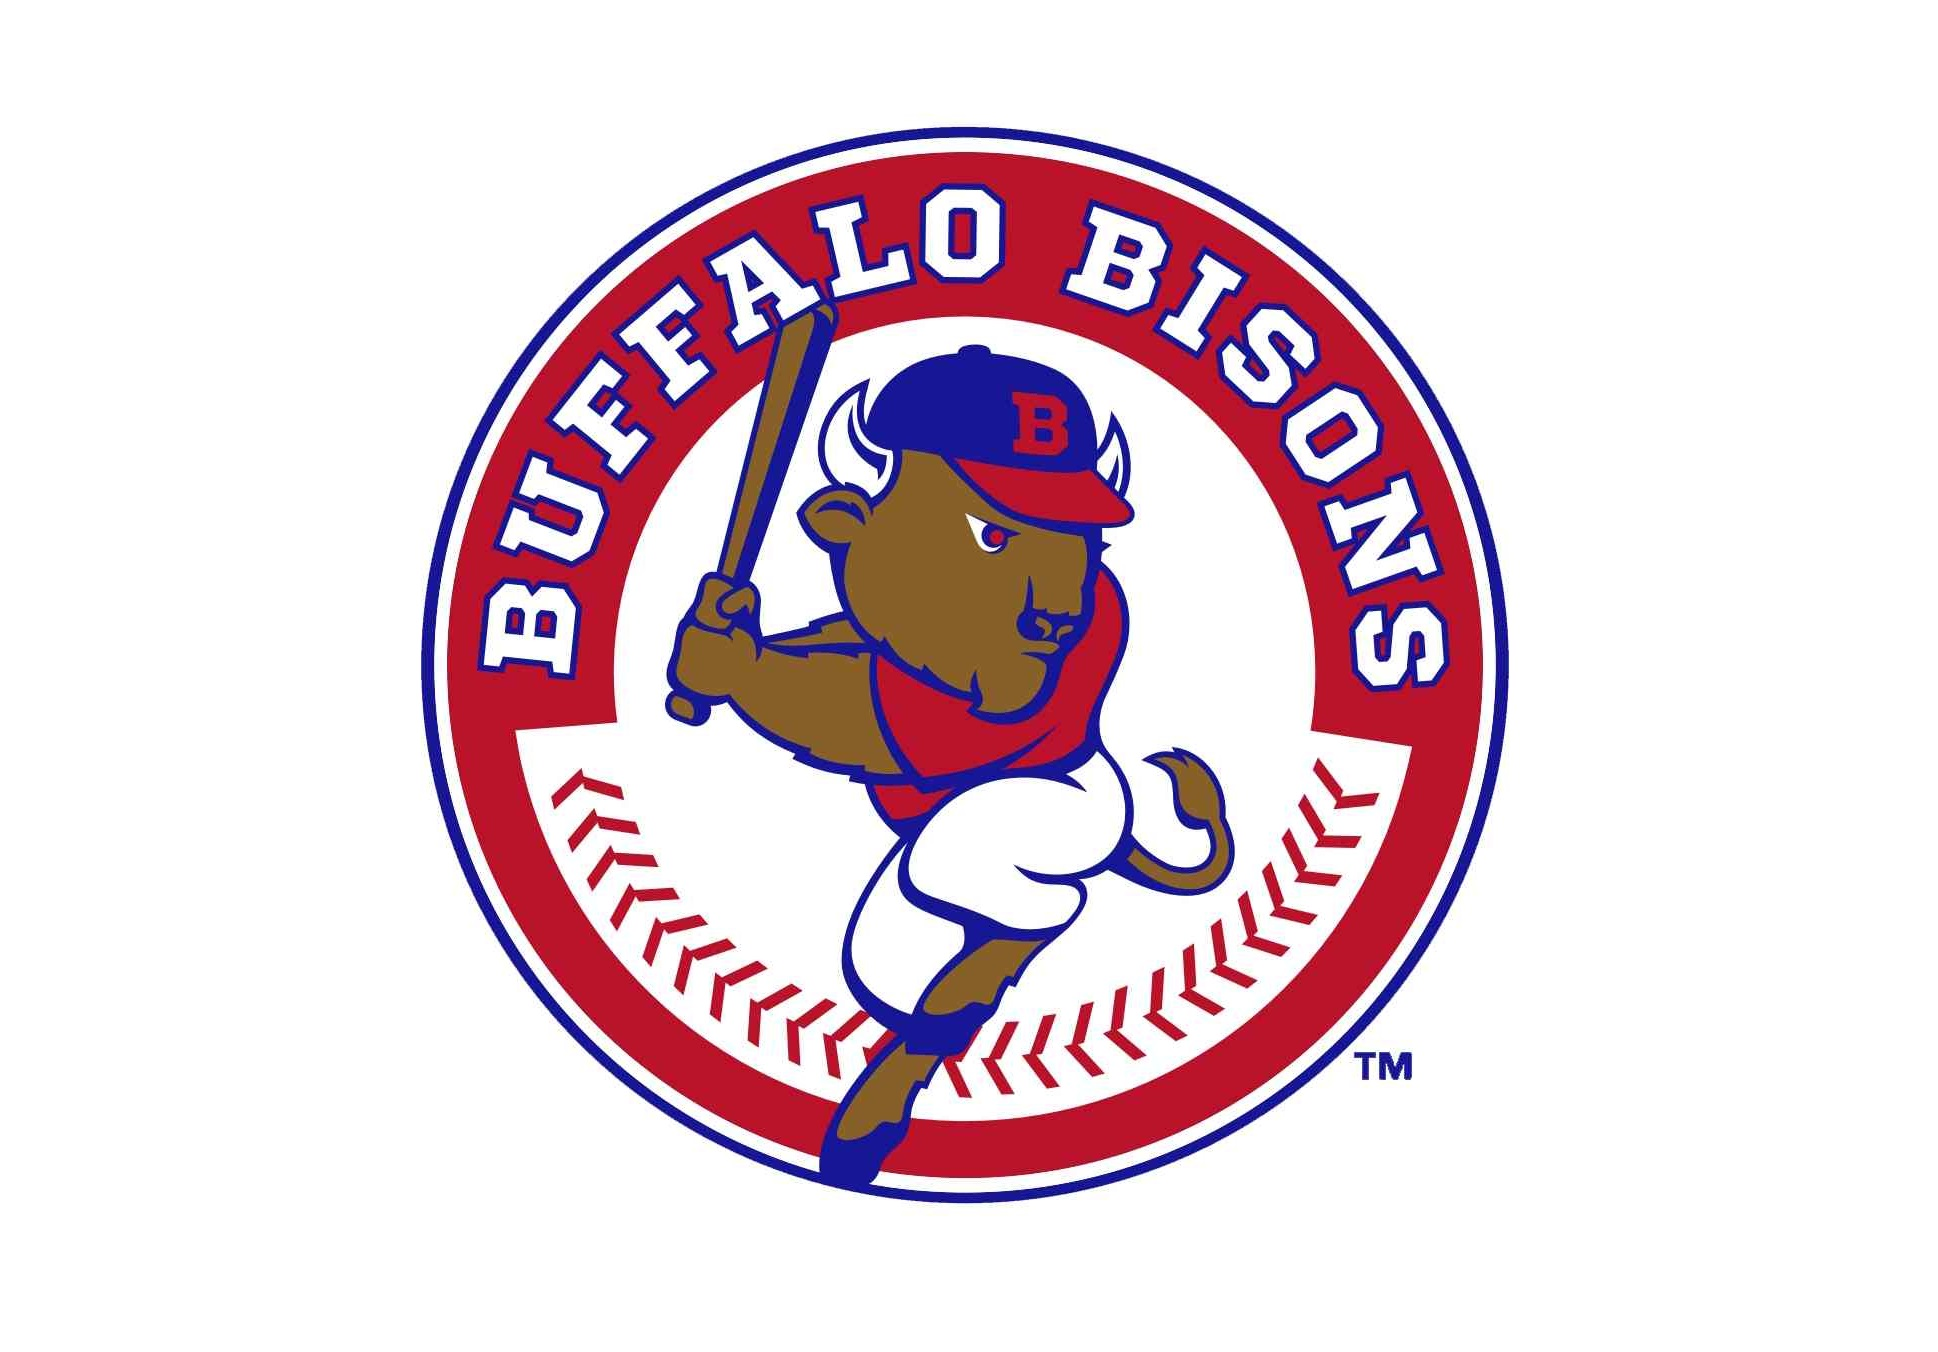 Bisons wrap up 5-2 road trip, get Refsnyder from Yanks